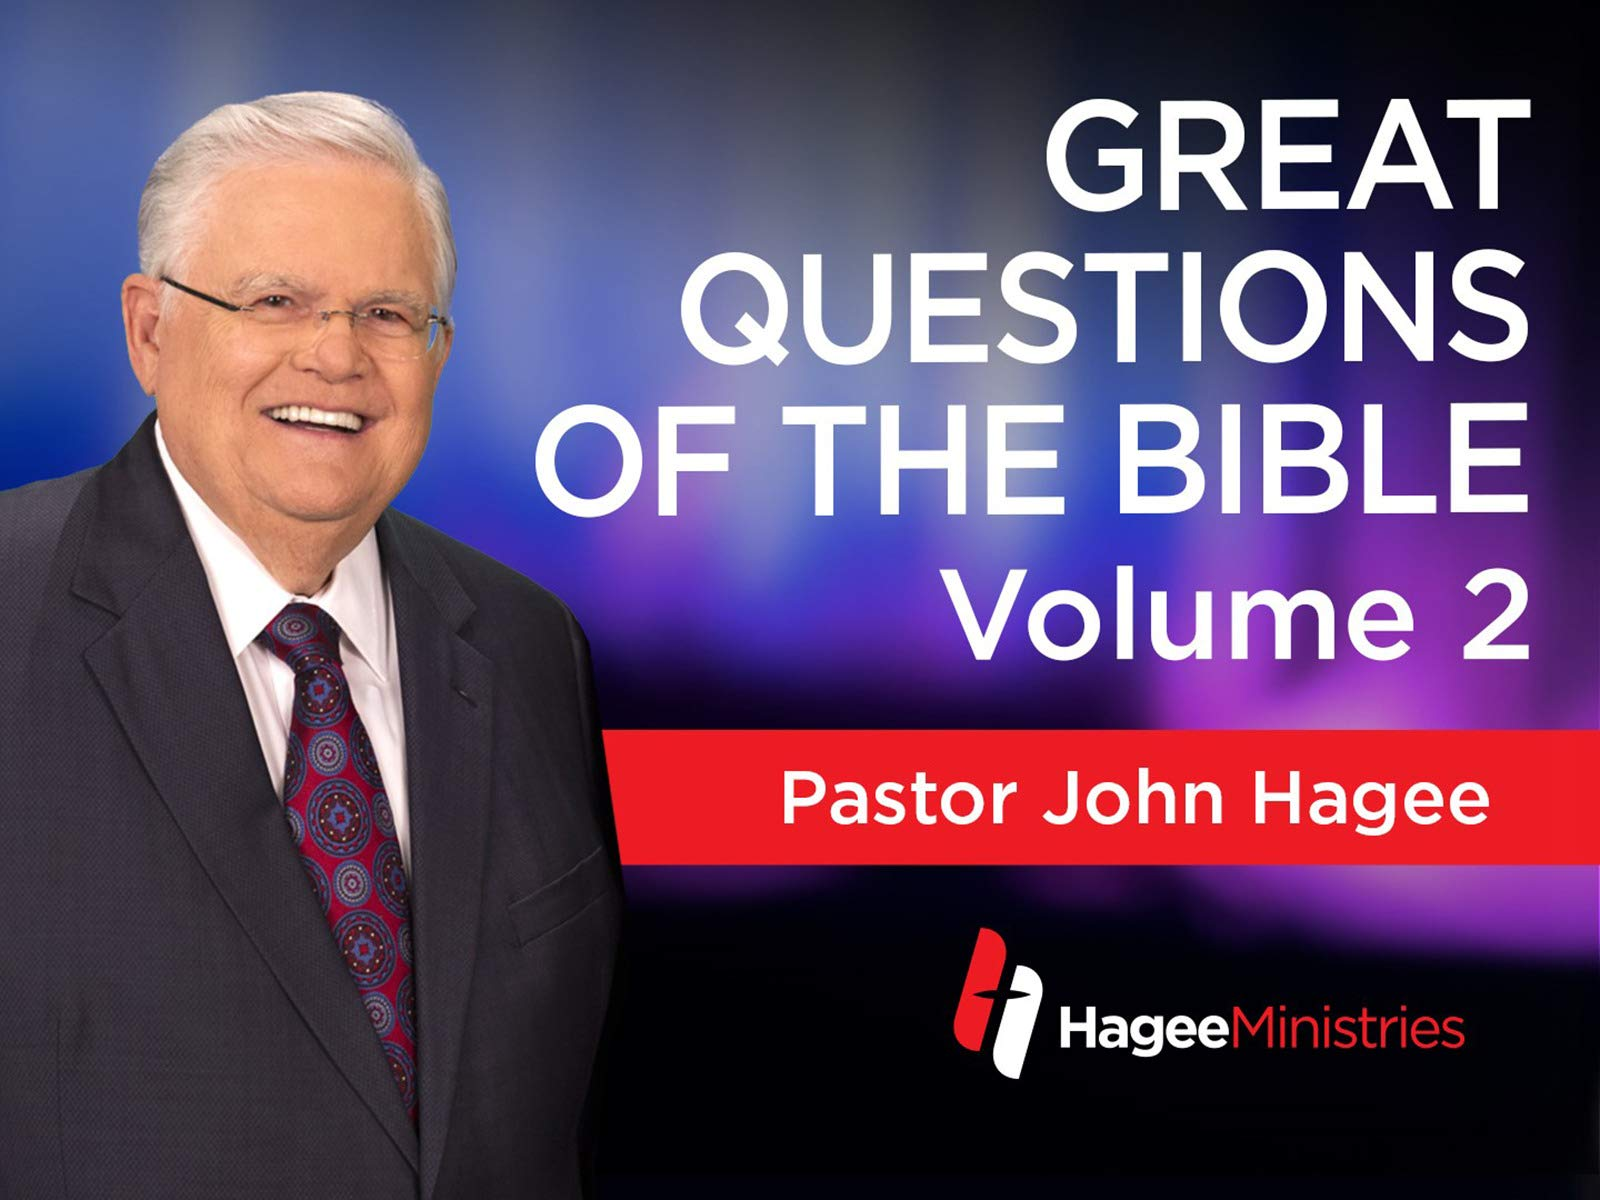 Watch Great Questions of the Bible Volume 2 with John Hagee ...